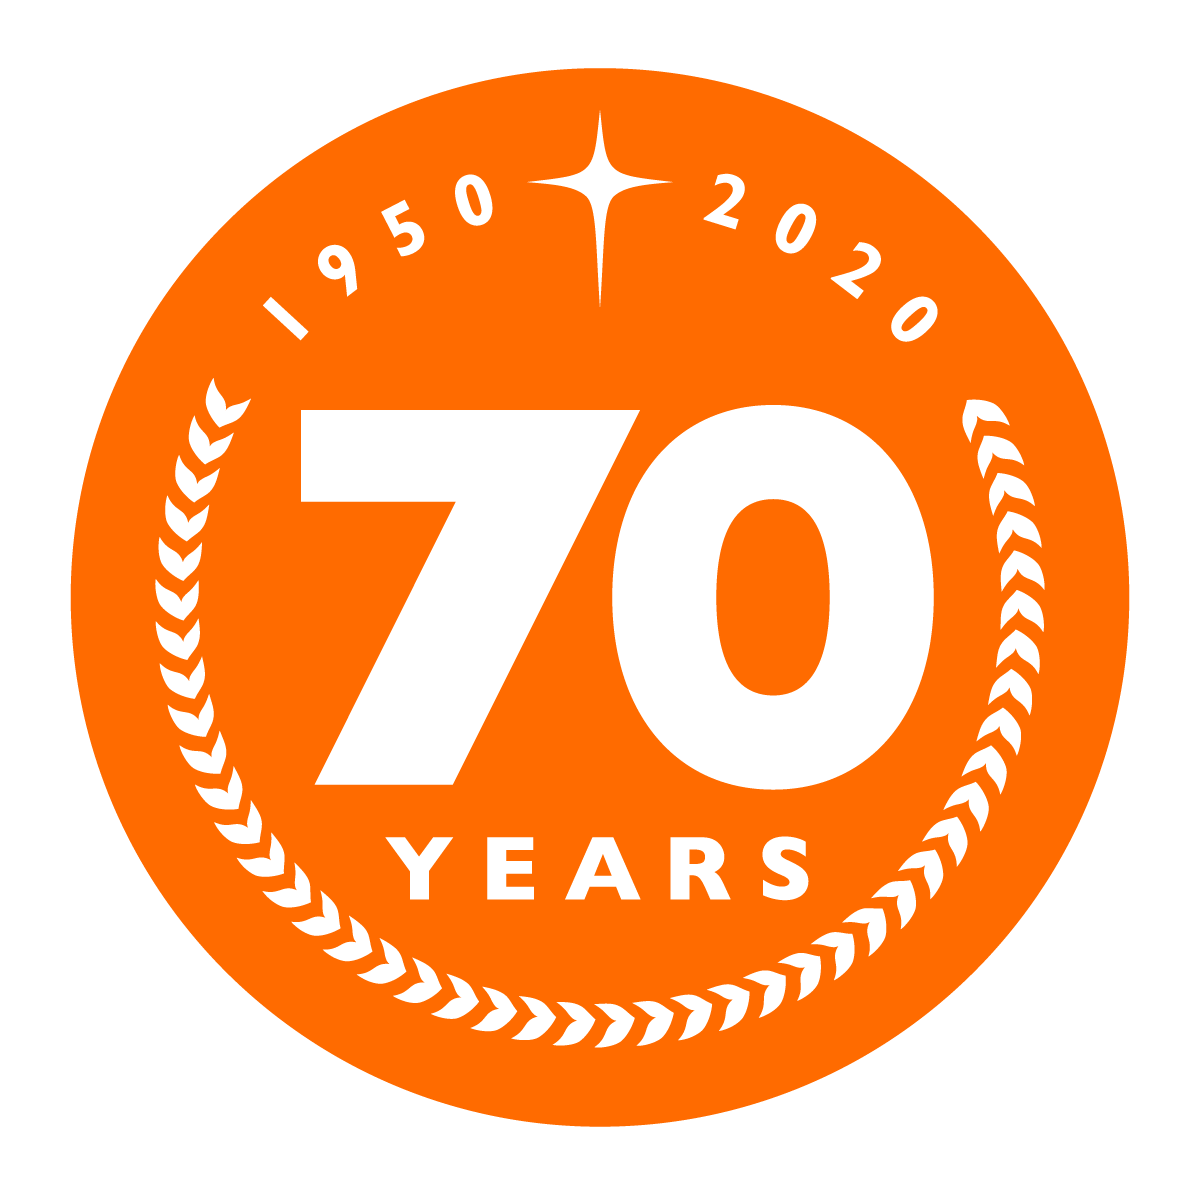 World Vision 70 Years